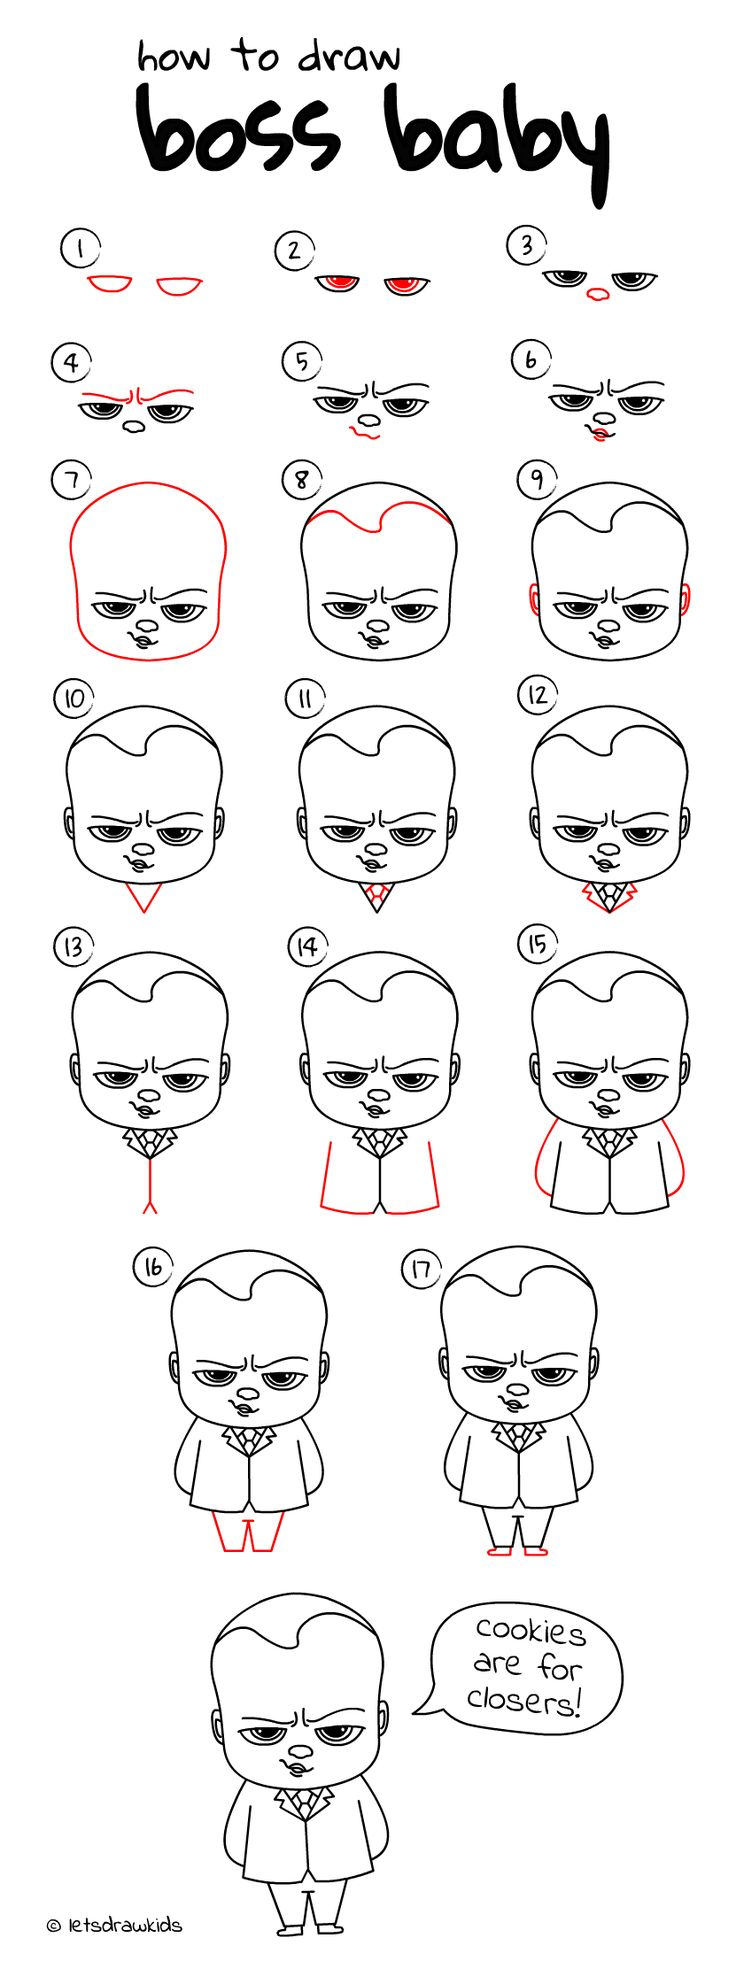 How to draw BossBaby. Easy drawing, step by step, perfect for kids! Let's draw kids. letsdrawkids.com/